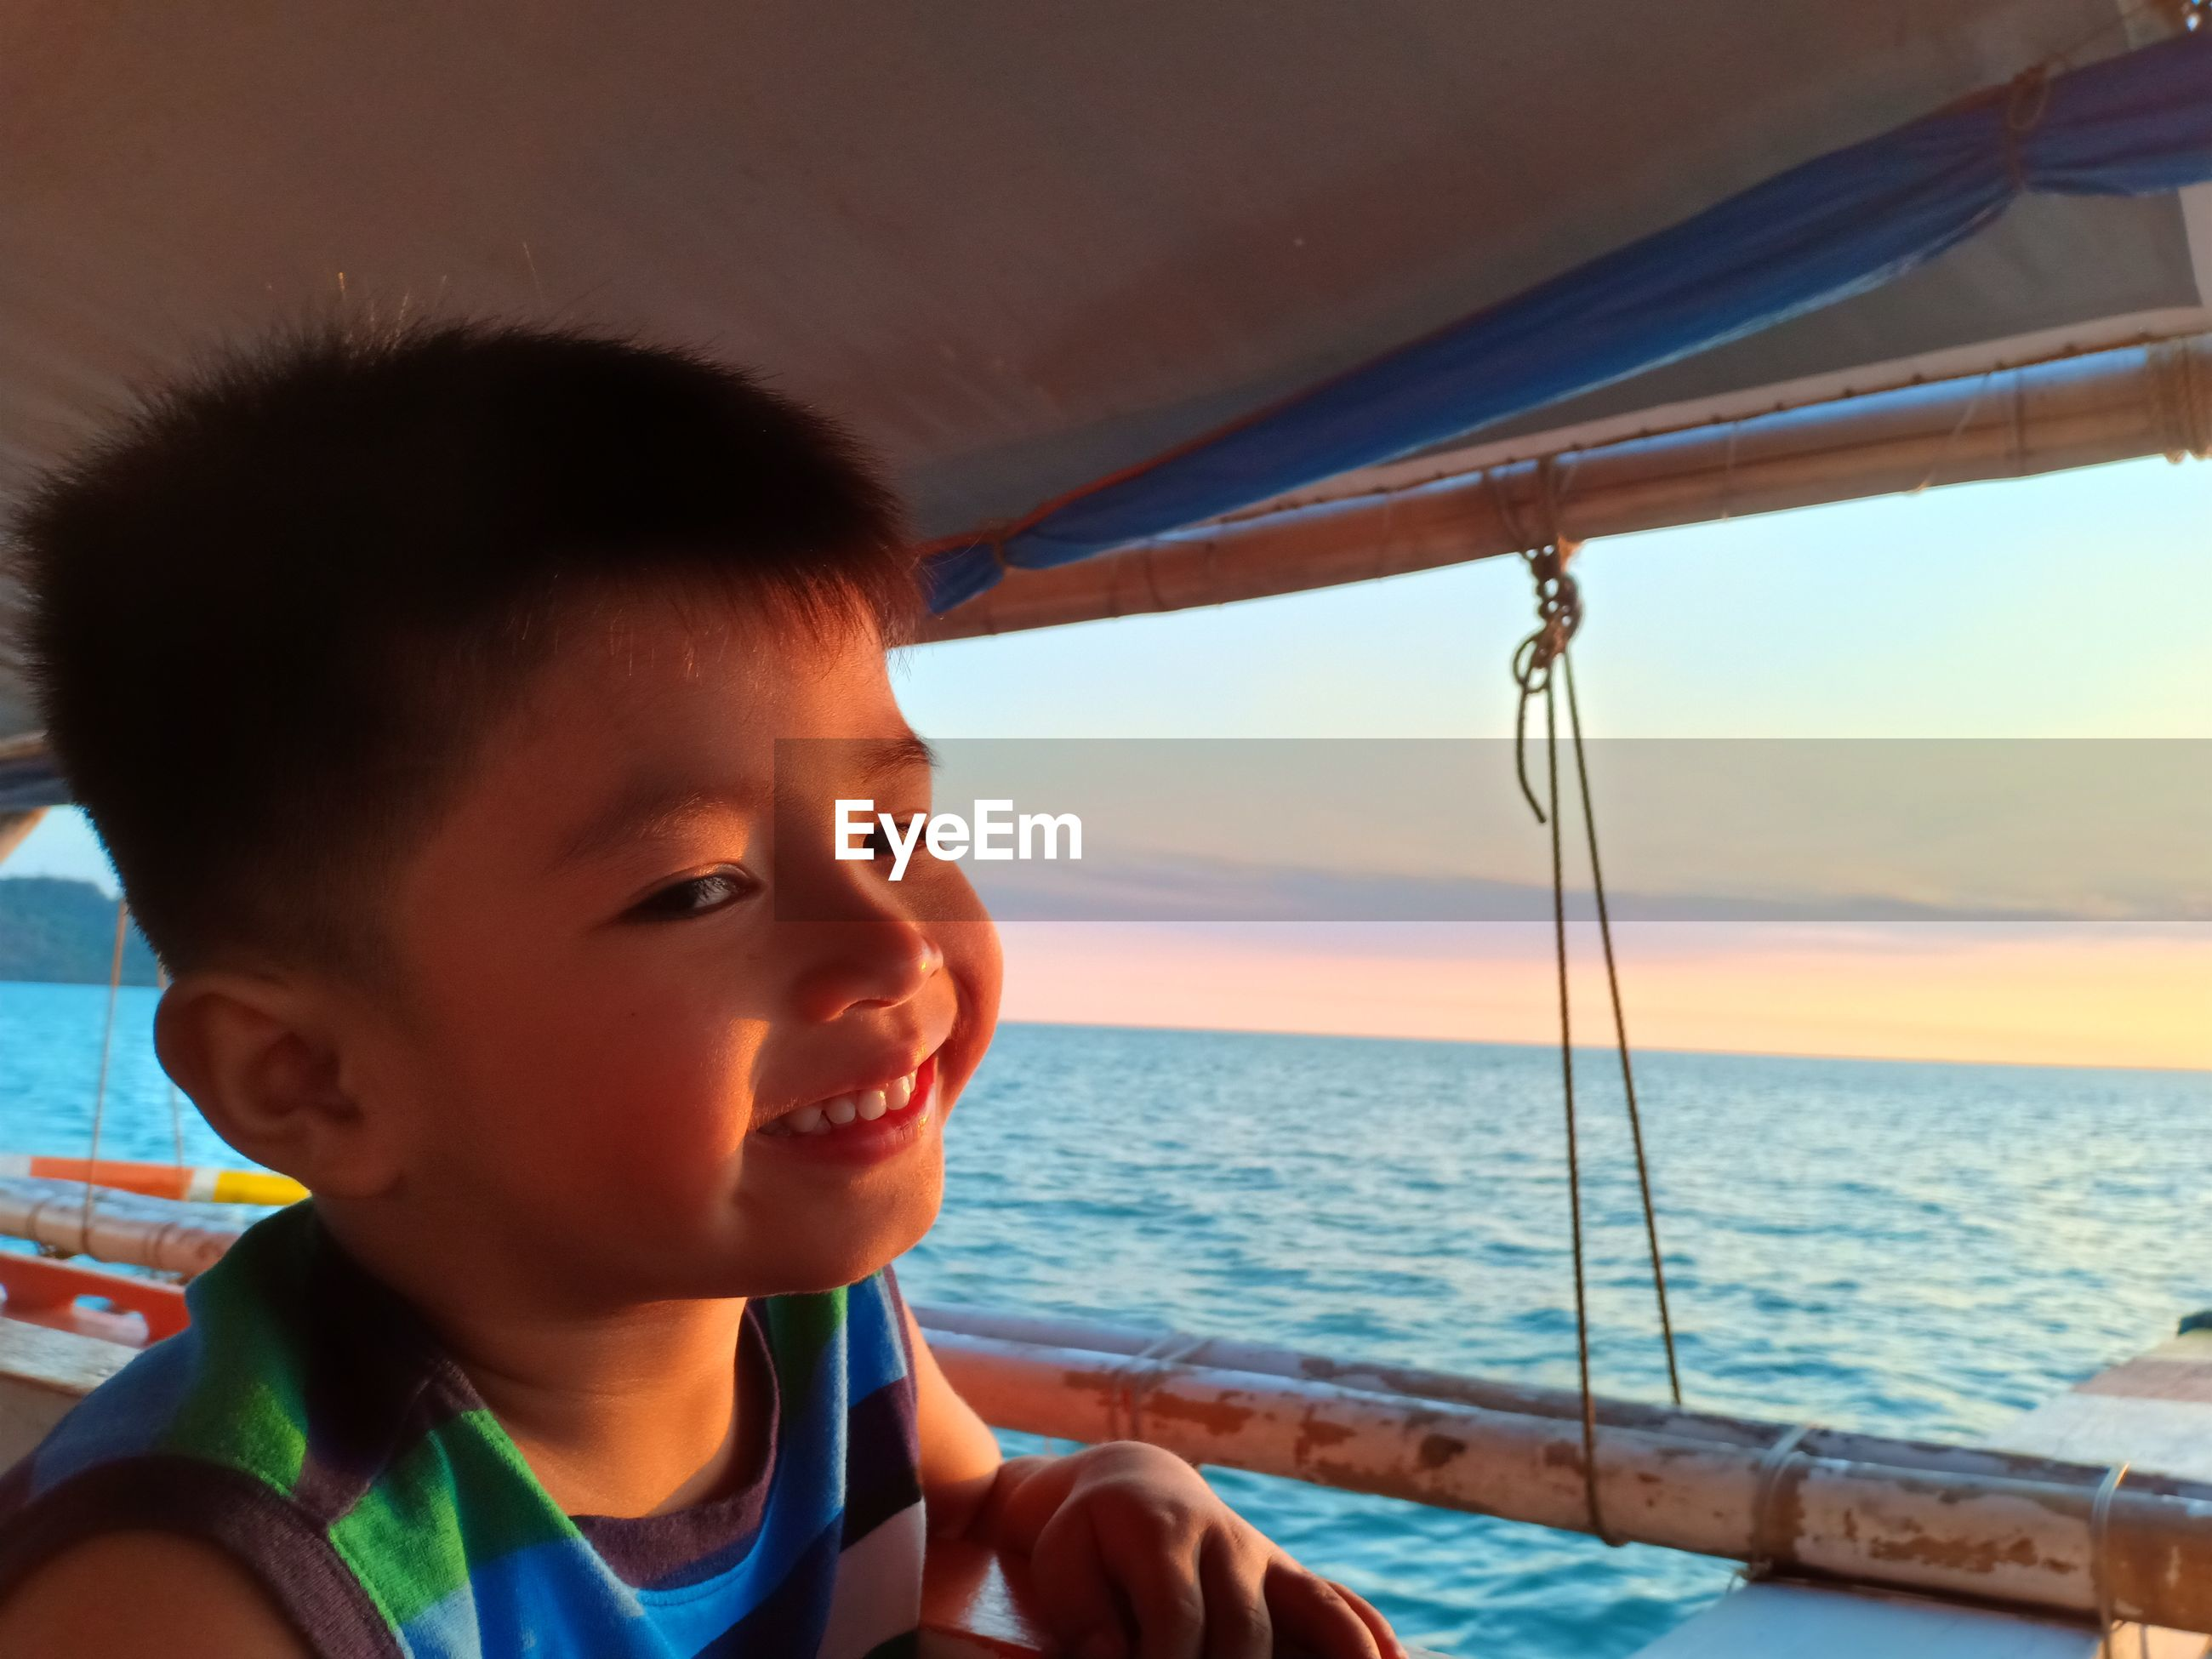 Portrait of smiling boy on boat in sea against sky